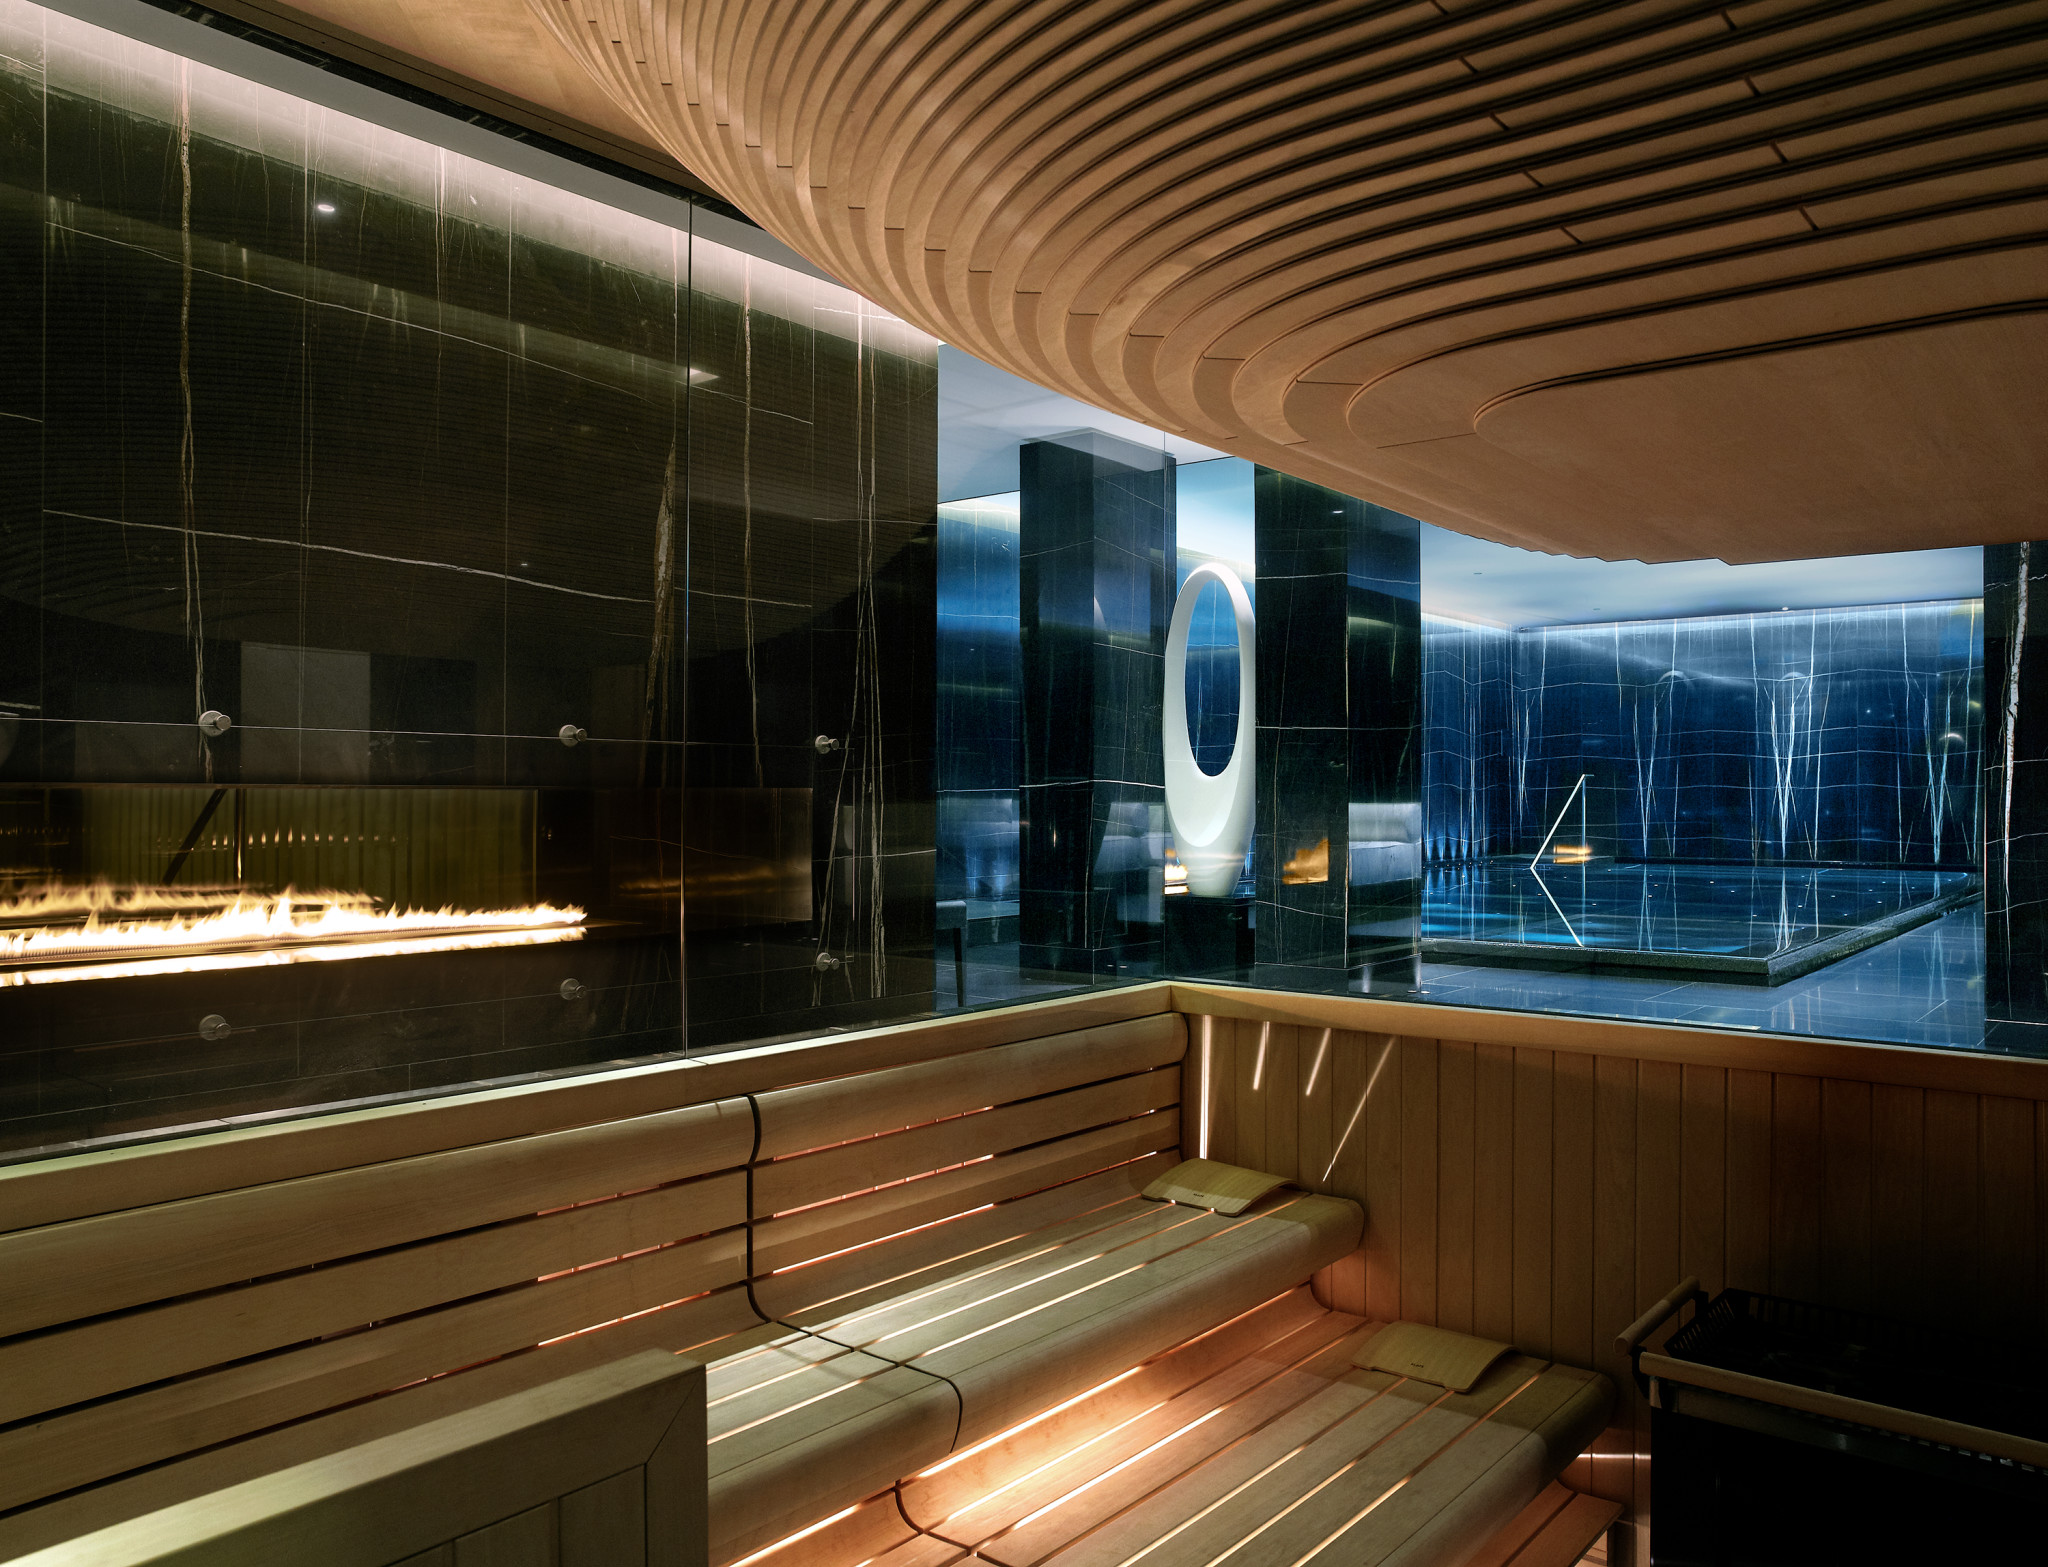 The Sauna ESPA life at Corinthia